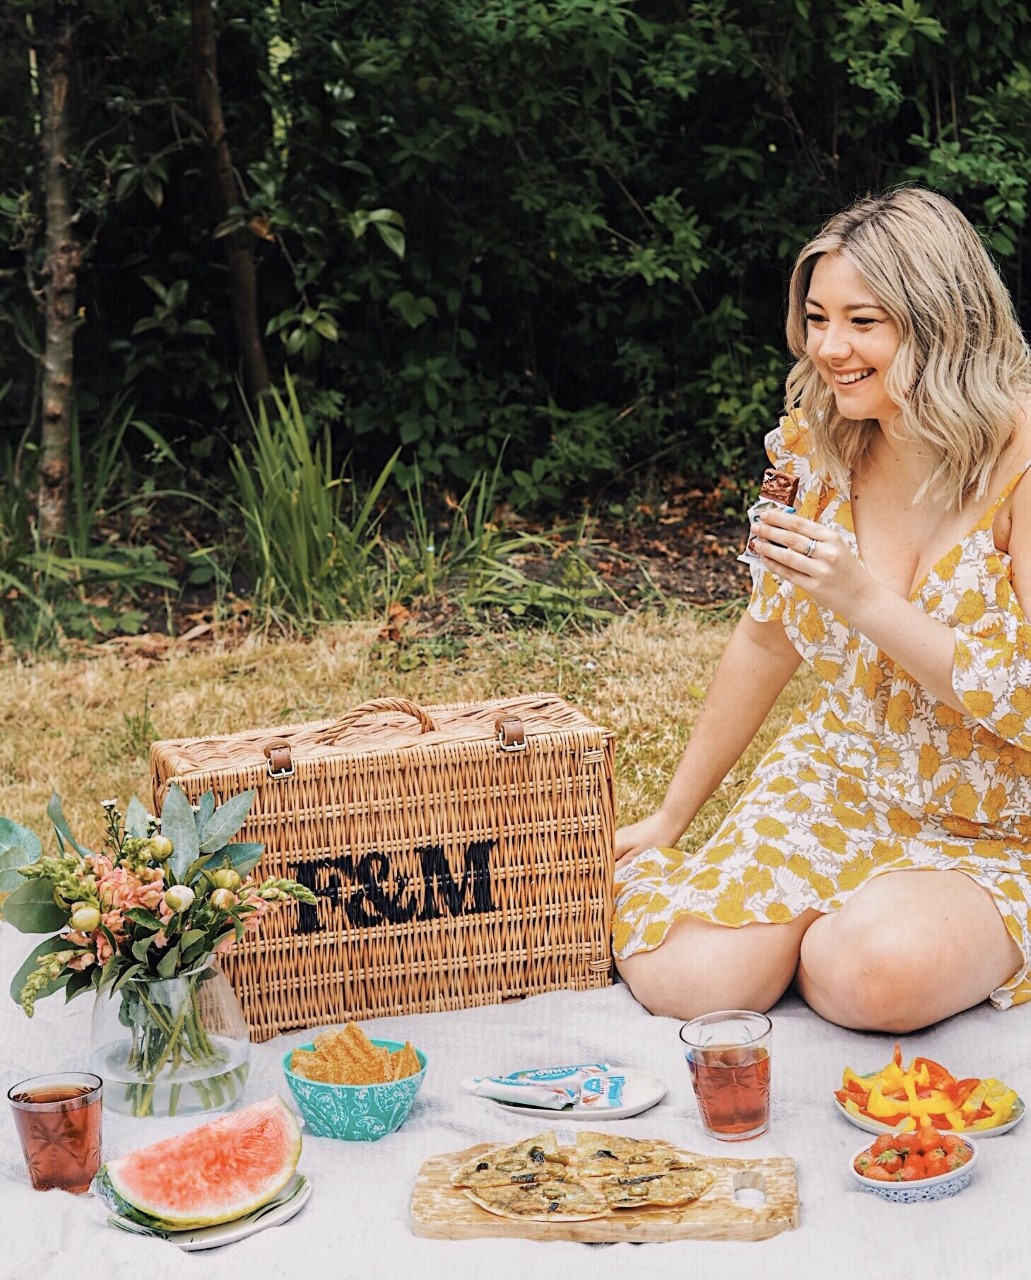 Bounty Milk Snacks, Picnic, Alfresco dining, dining alfresco, picnic styling, summer dining, summer, summer style, summer styling